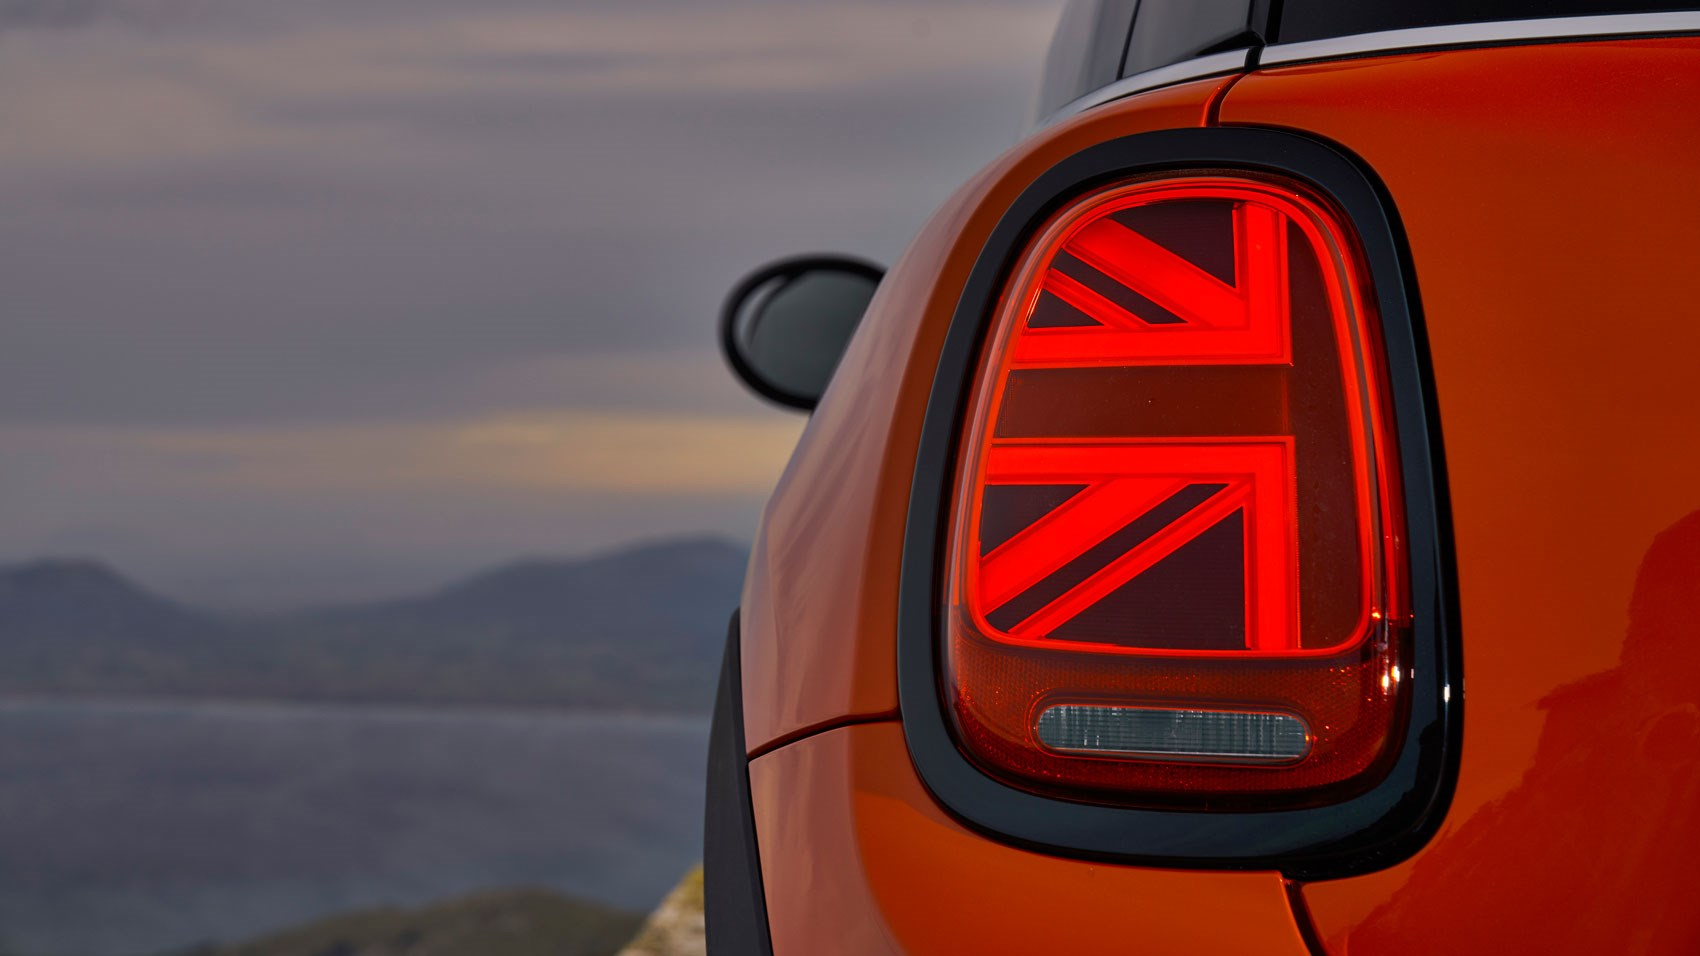 Mini Cooper S rear light